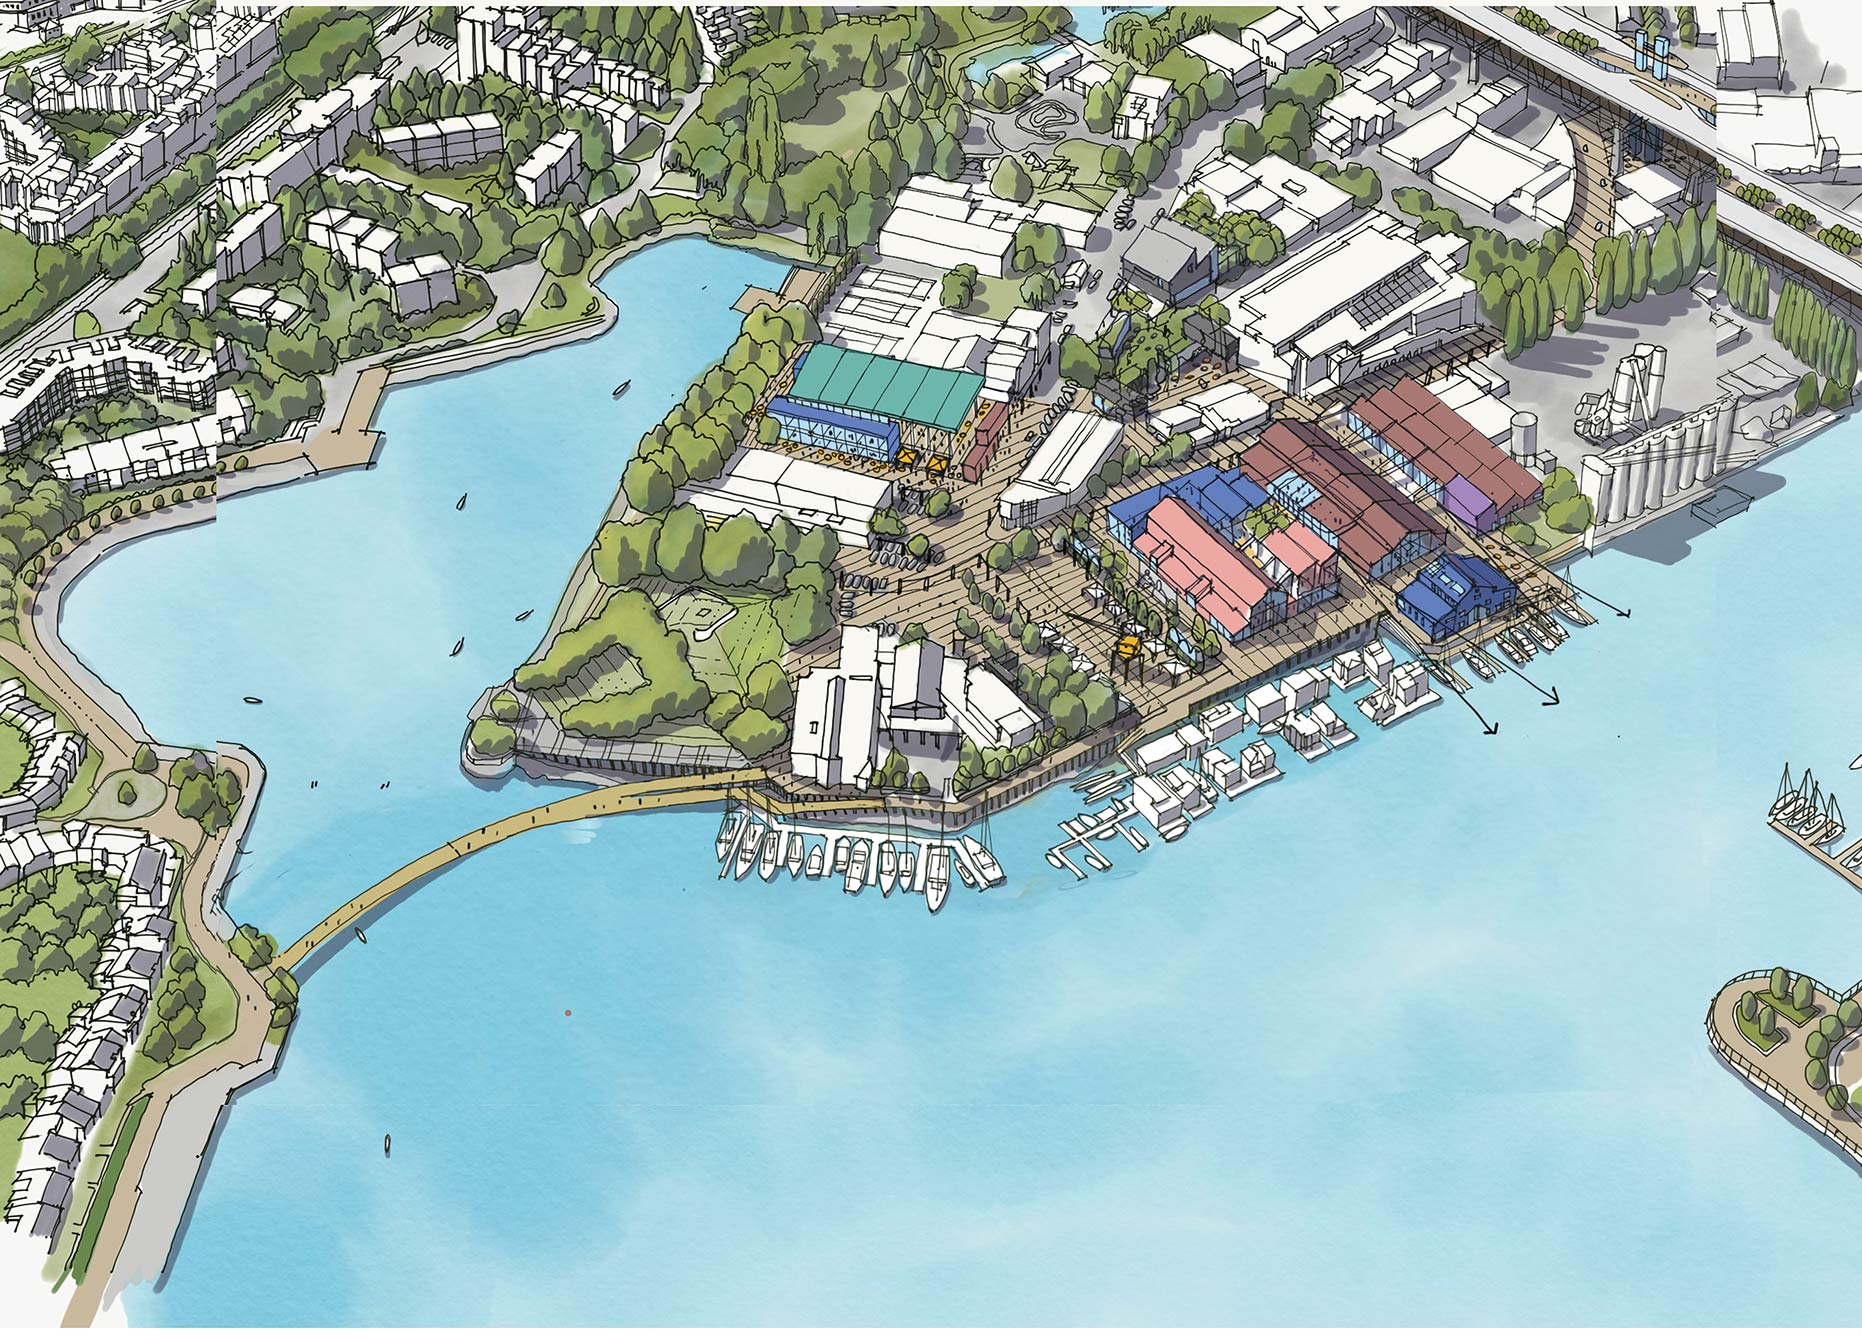 Concept sketch of proposed Alder Bay Pedestrian and Cycle Bridge